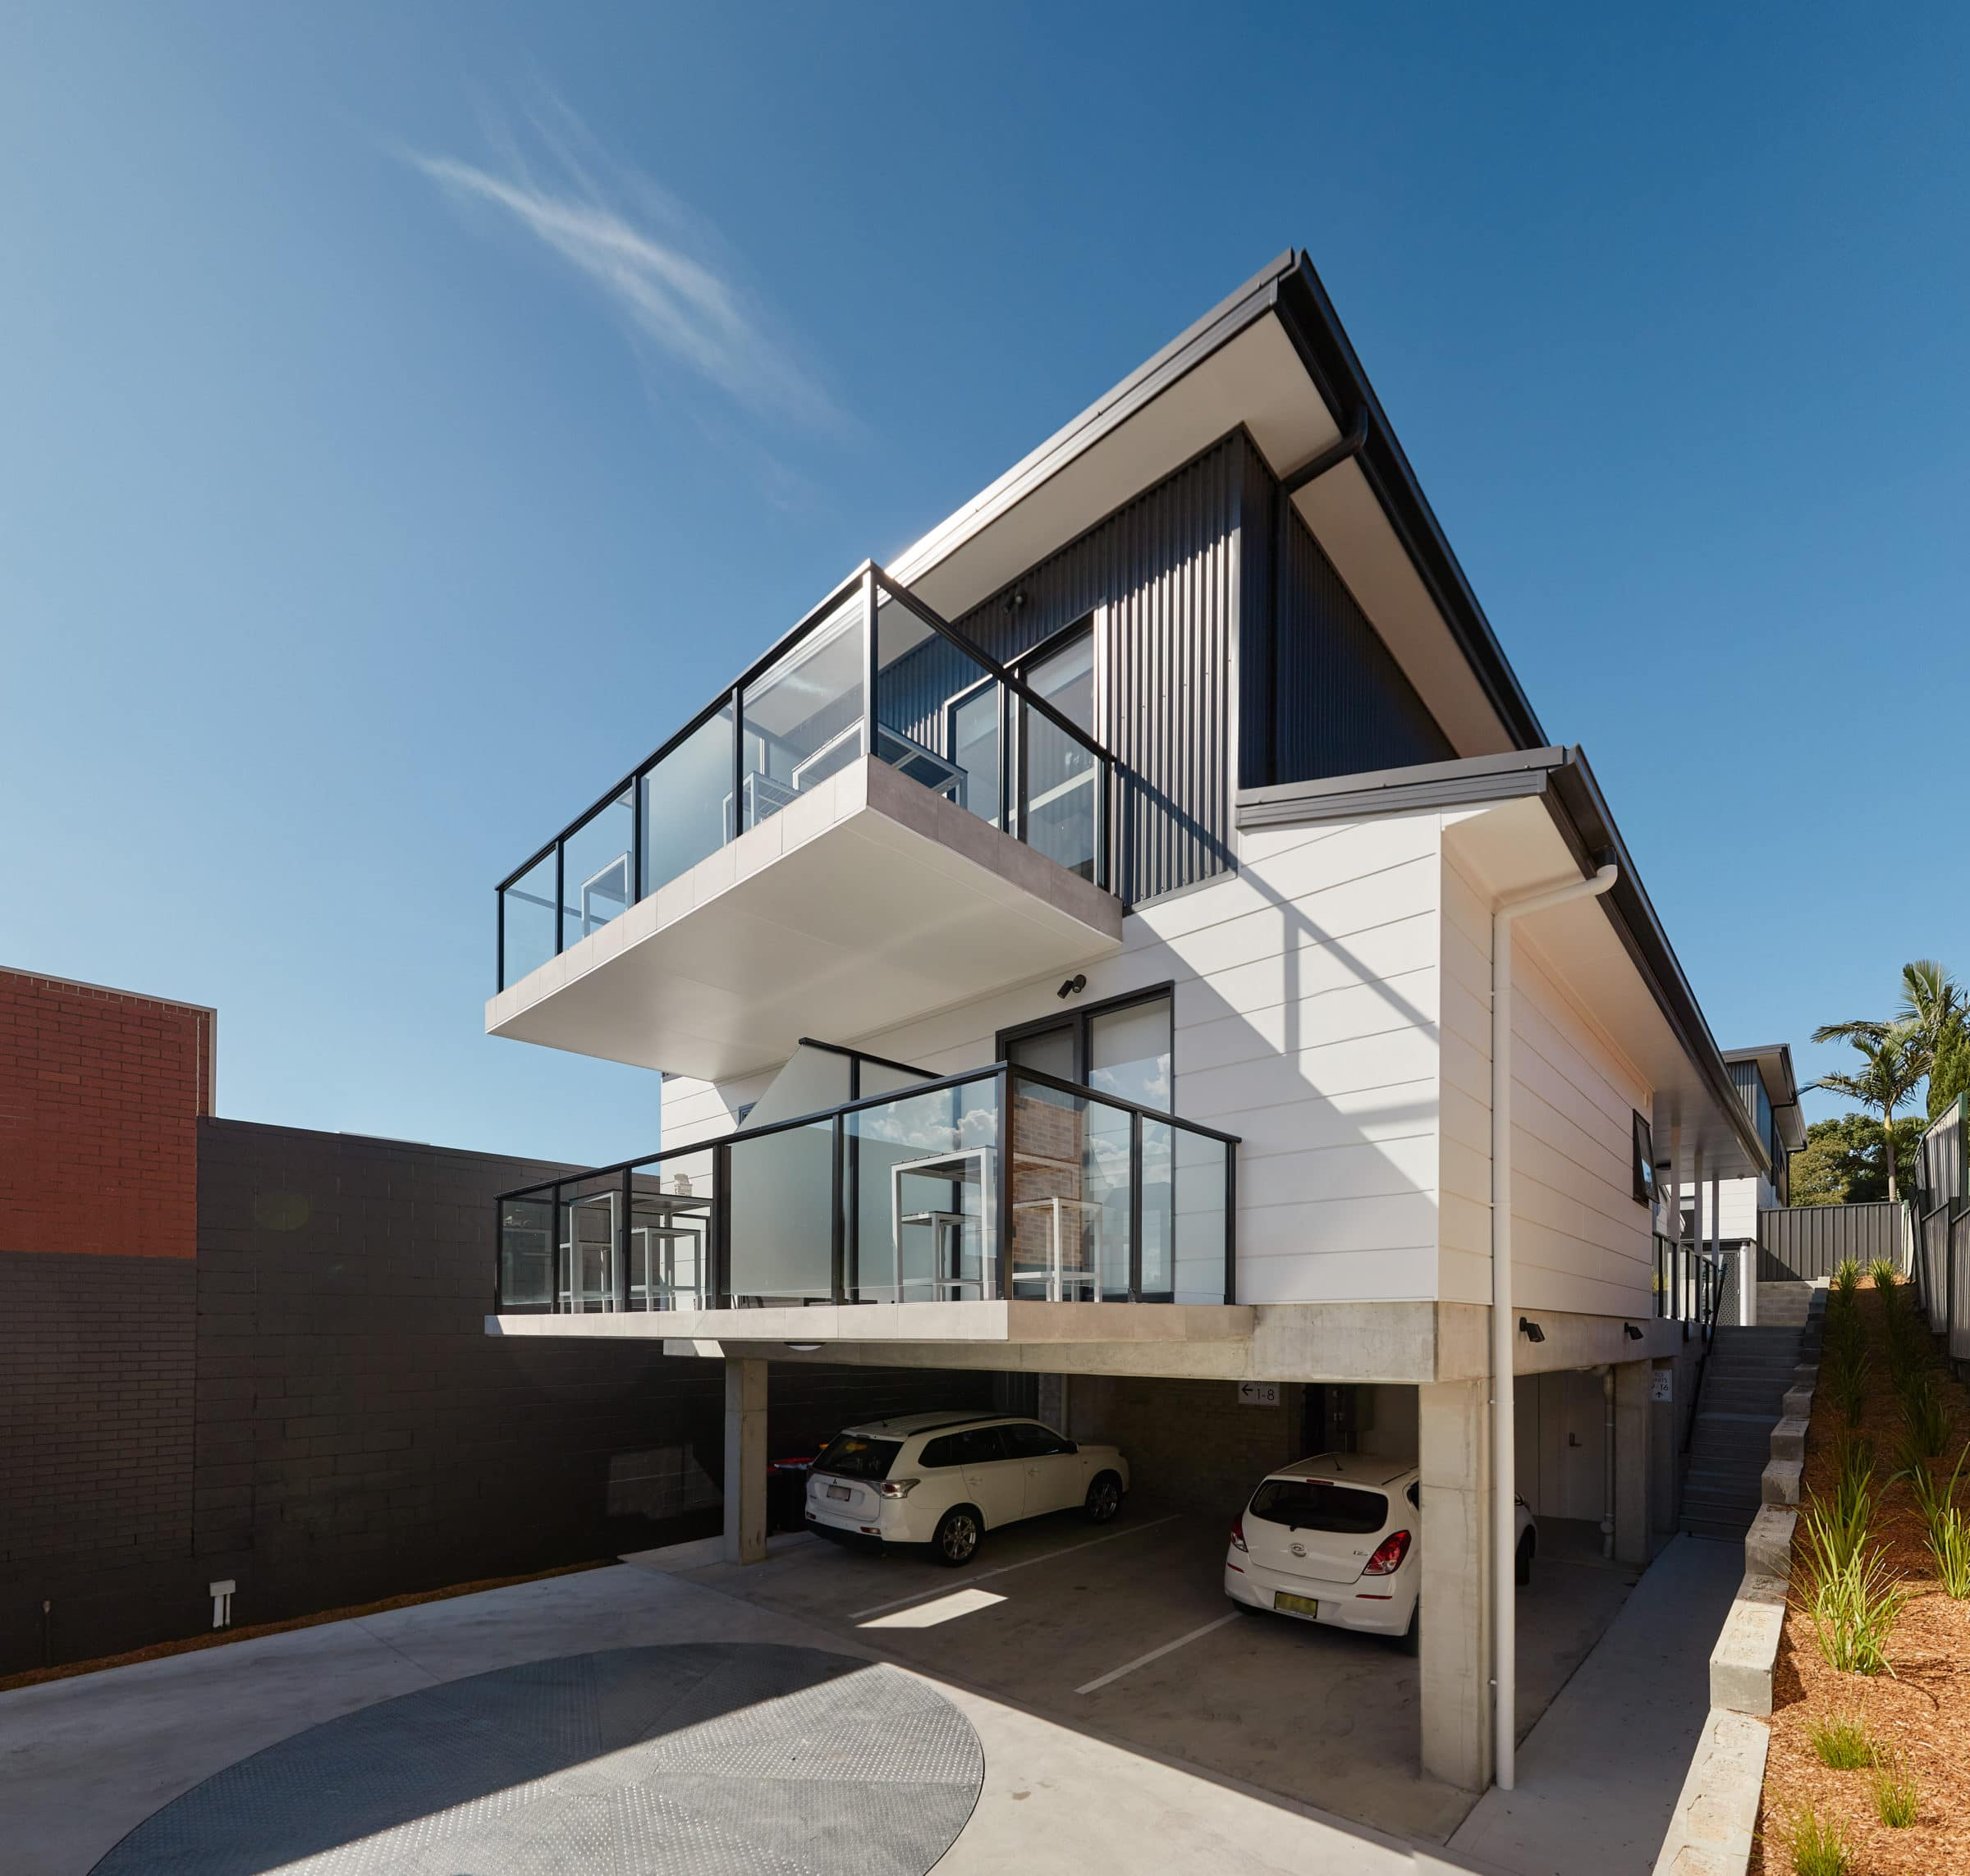 Alfred Apartments - https://www.newcastleapartments.com.au/wp-content/uploads/2019/08/side-scaled.jpg